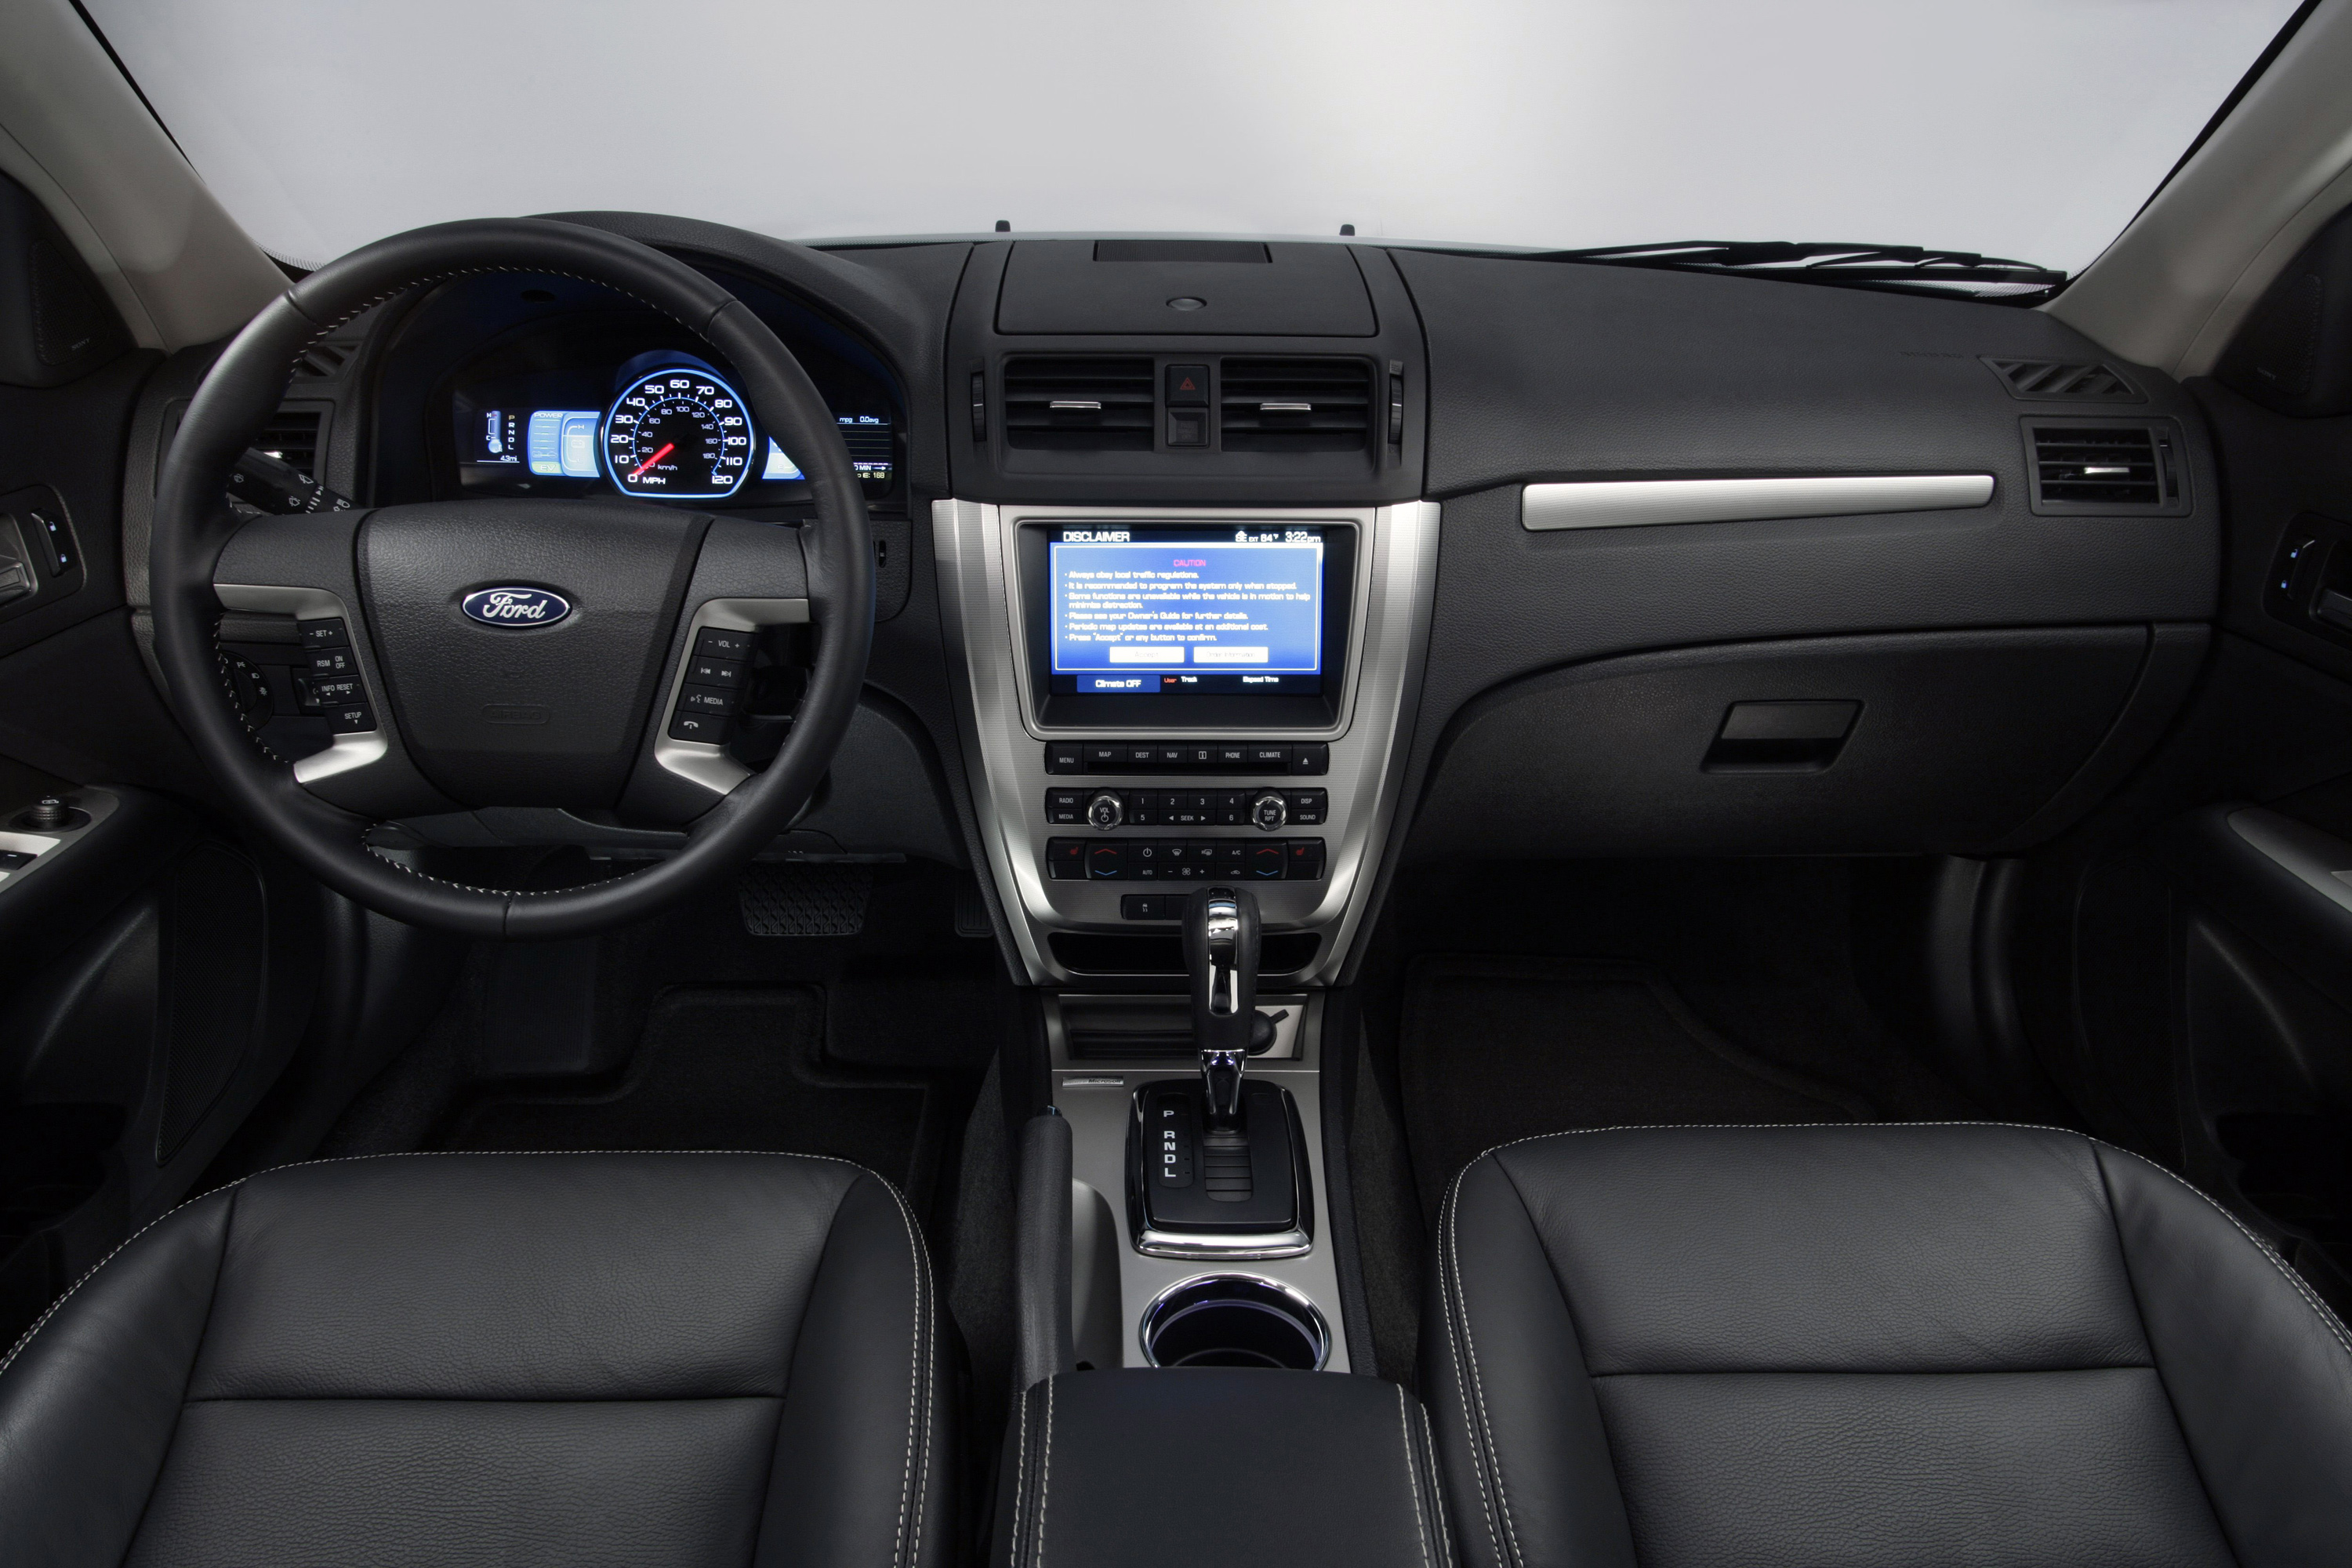 The interior of the 2010 Ford Fusion Hybrid